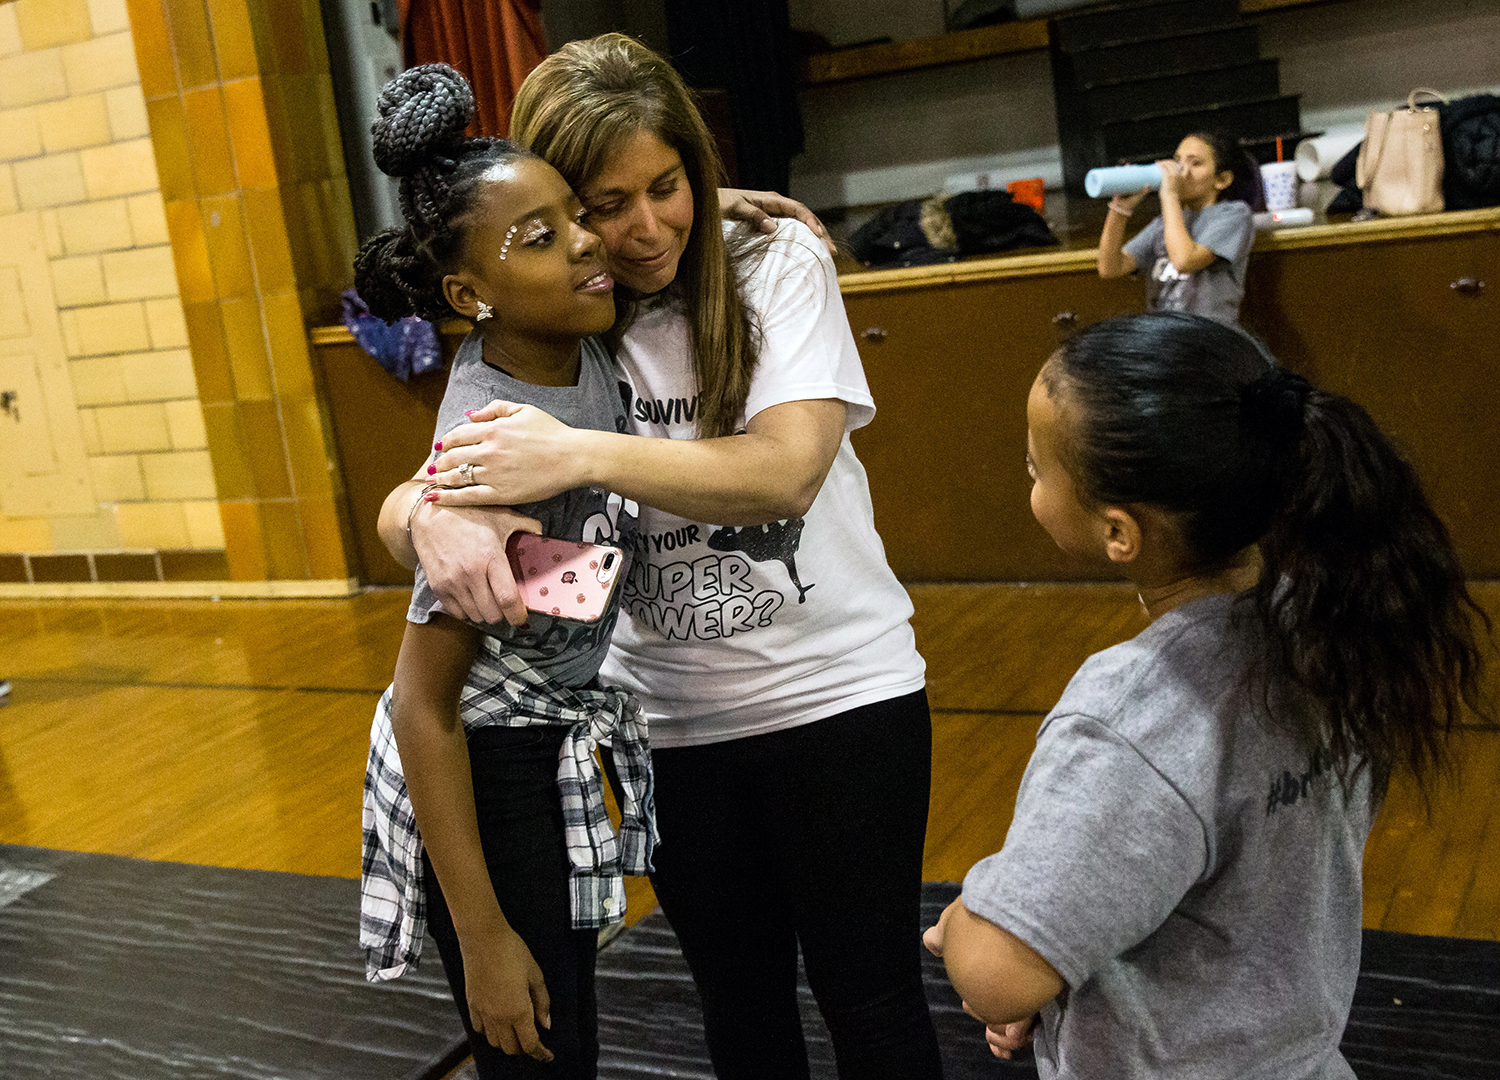 Kim Drewes, a third grade teacher at Dubois Elementary School and the hip hop dance team instructor, gets a hug a from Shyahnna Purnell after the team practiced their routine before performing during halftime of a junior varsity basketball game at Lanphier High School, Tuesday, Feb. 12, 2019, in Springfield, Ill. Drewes designed the choreography around her fight against a brain tumor in which she shared her experience with the kids and helped her through her battle.  [Justin L. Fowler/The State Journal-Register]